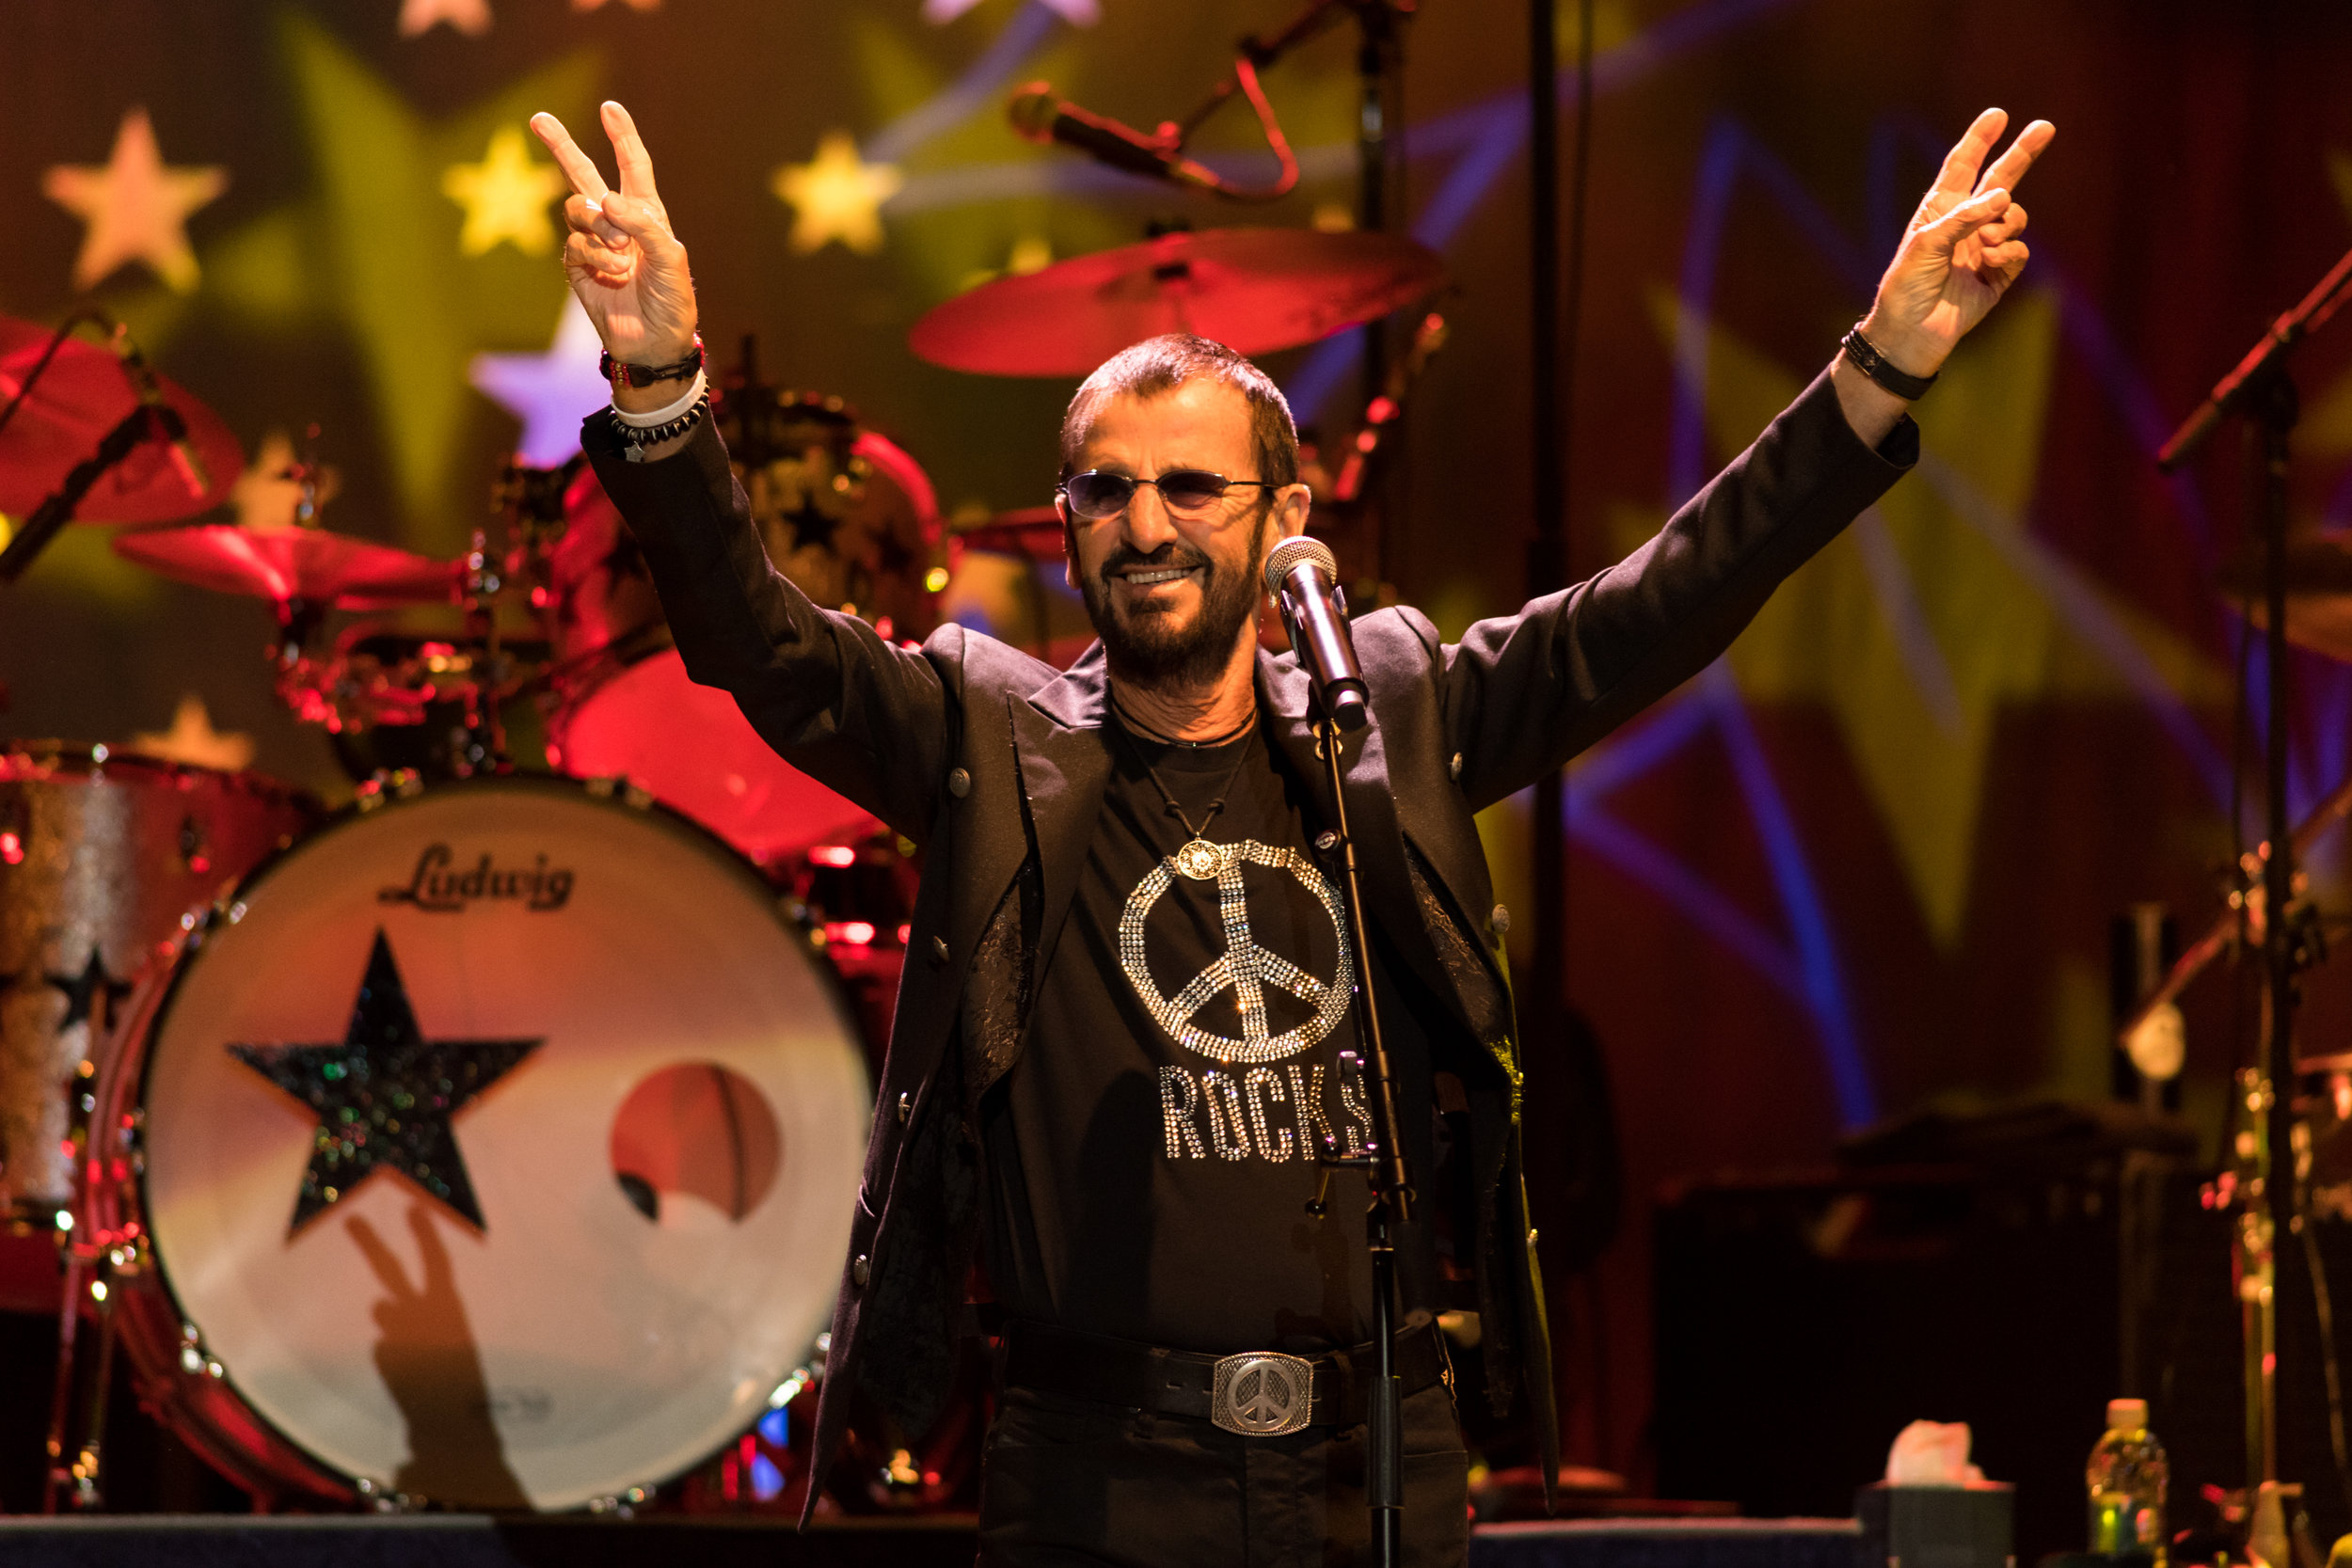 Ringo Starr and His All-Starr Band performs Sunday, November 12th 2017 at the Ted Constant Convocation Center.